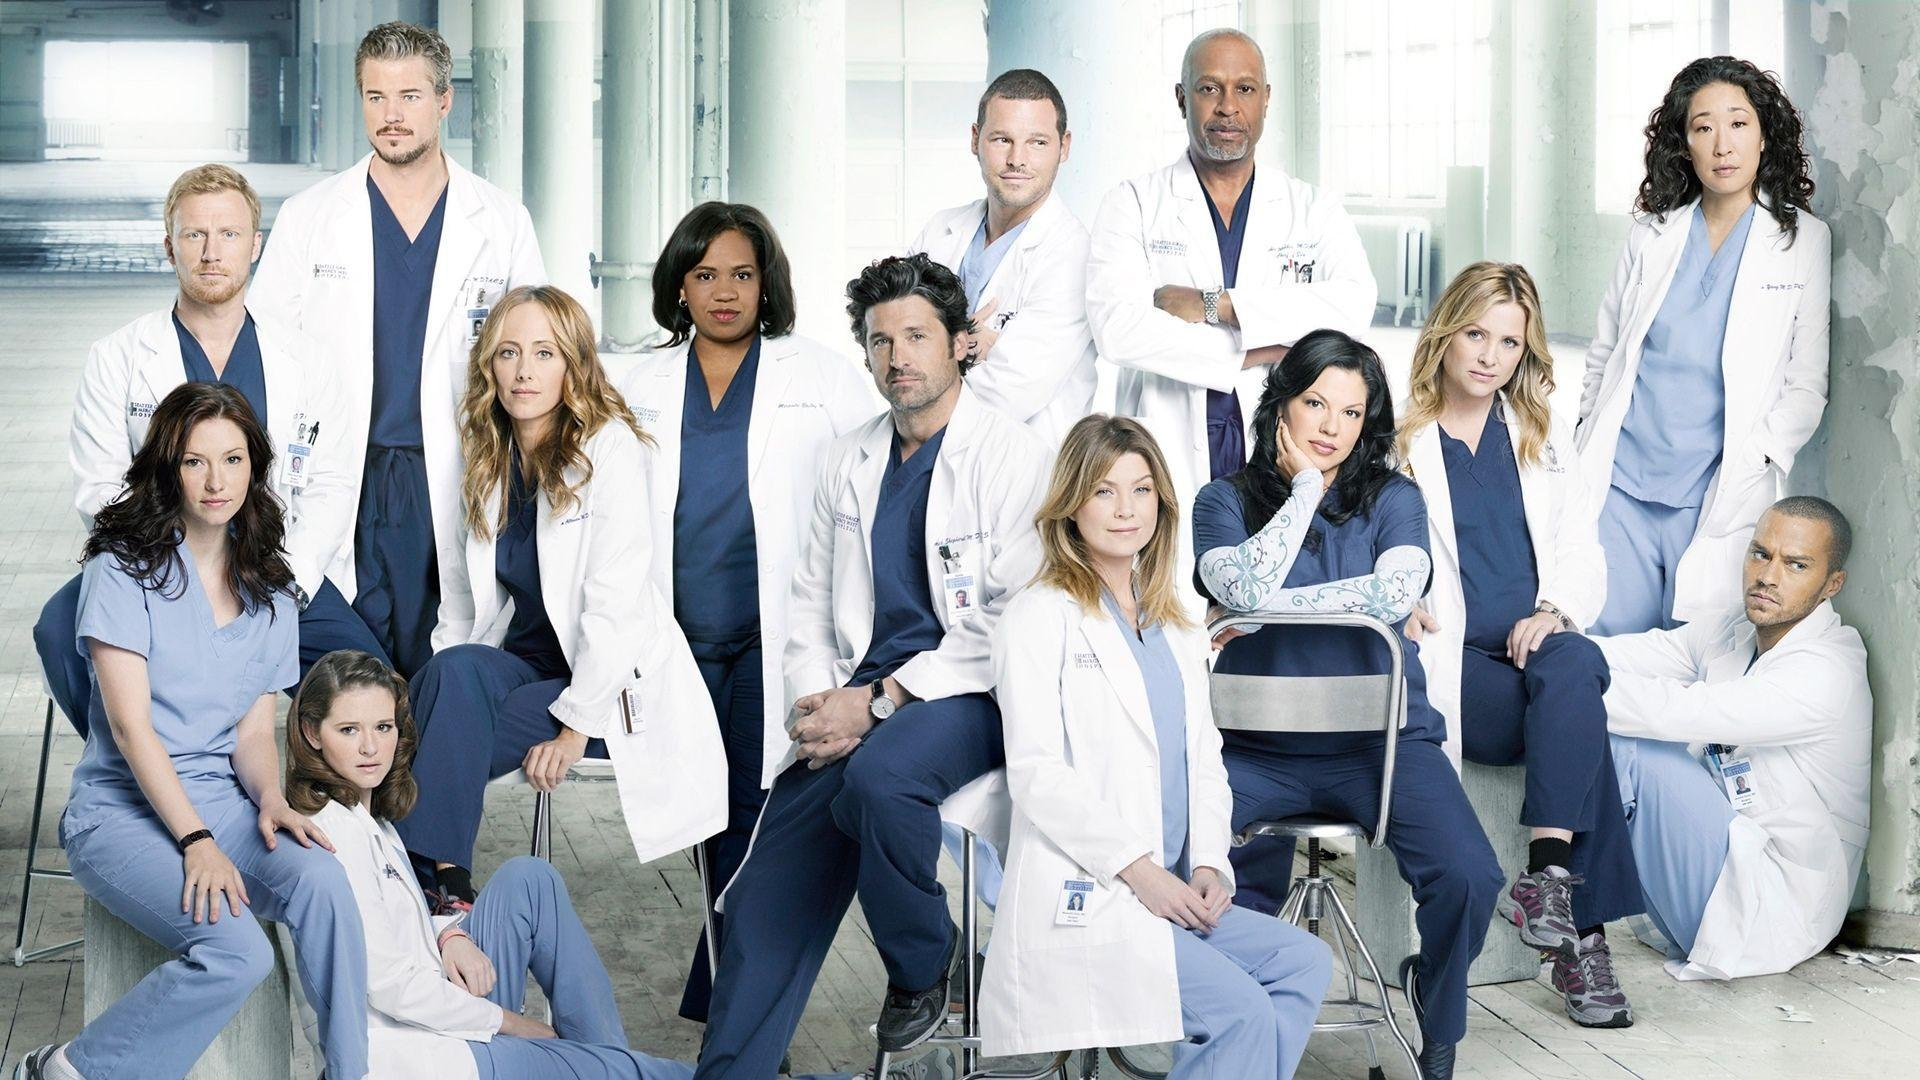 Greys Anatomy Wallpaper 5   1920 X 1080 stmednet 1920x1080